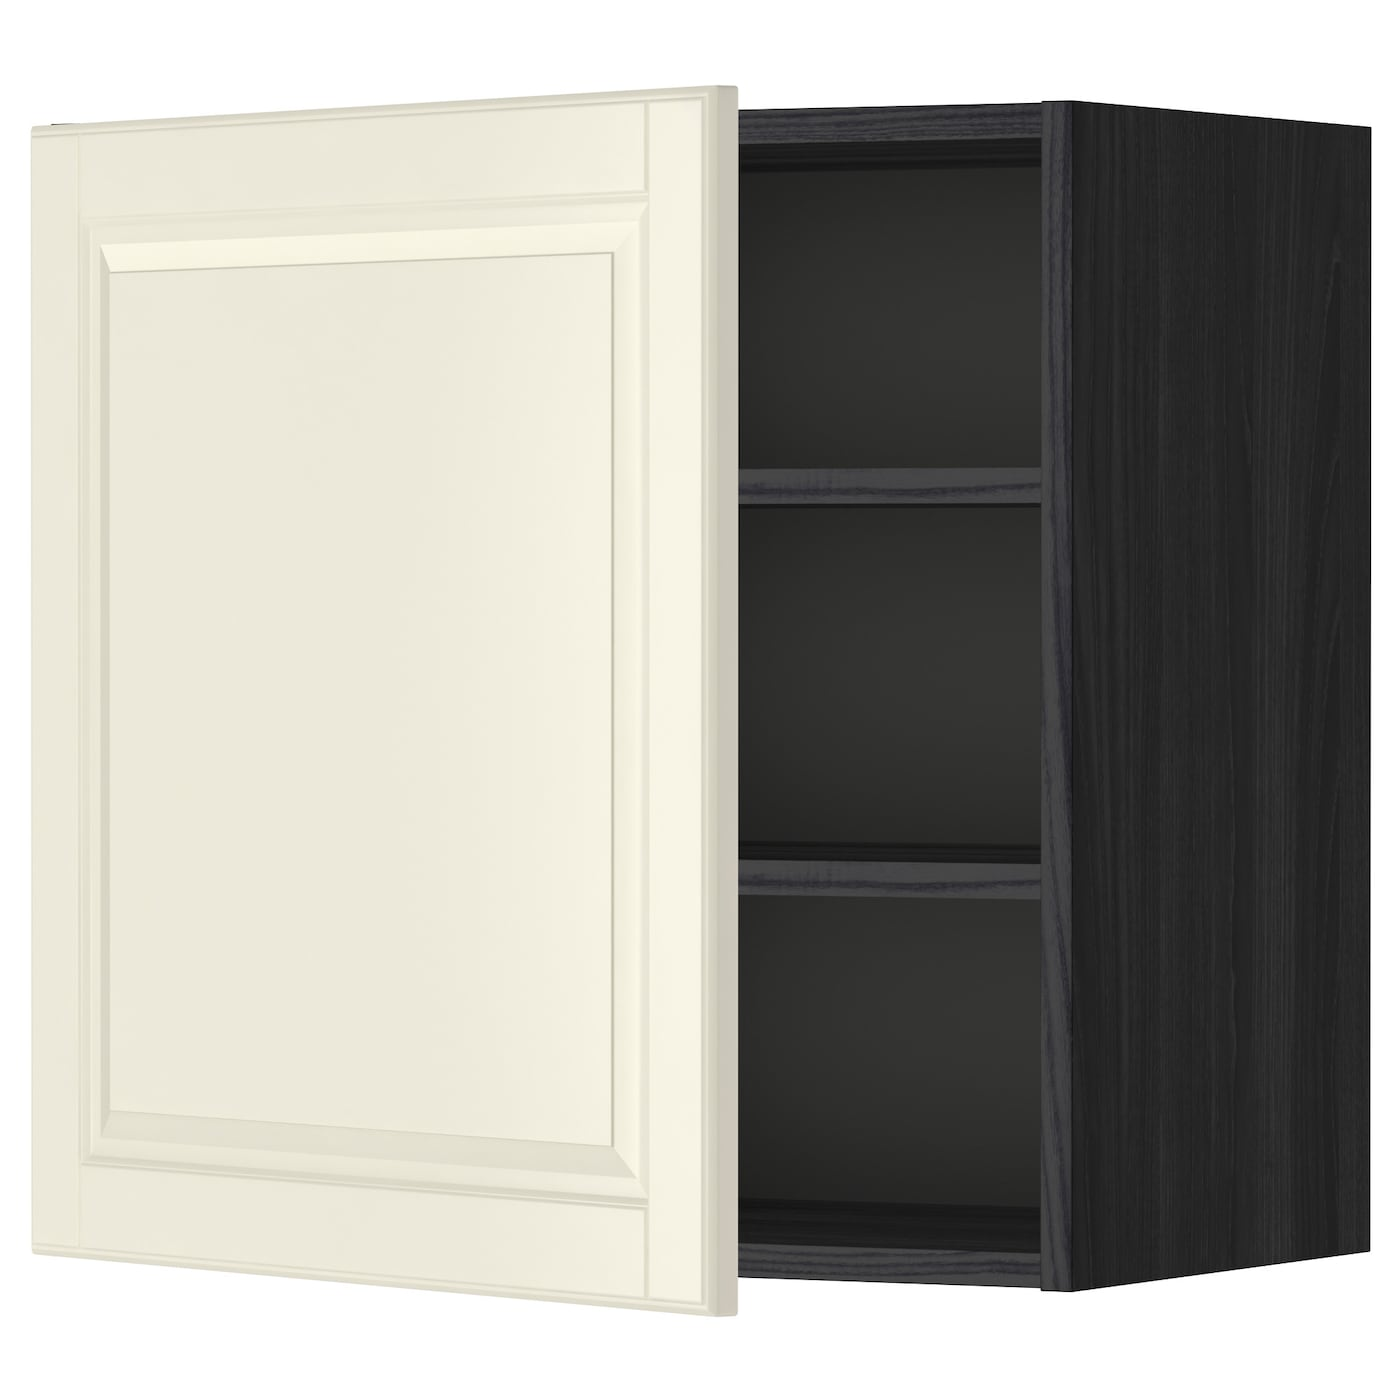 Metod wall cabinet with shelves black bodbyn off white for Off the shelf cabinets